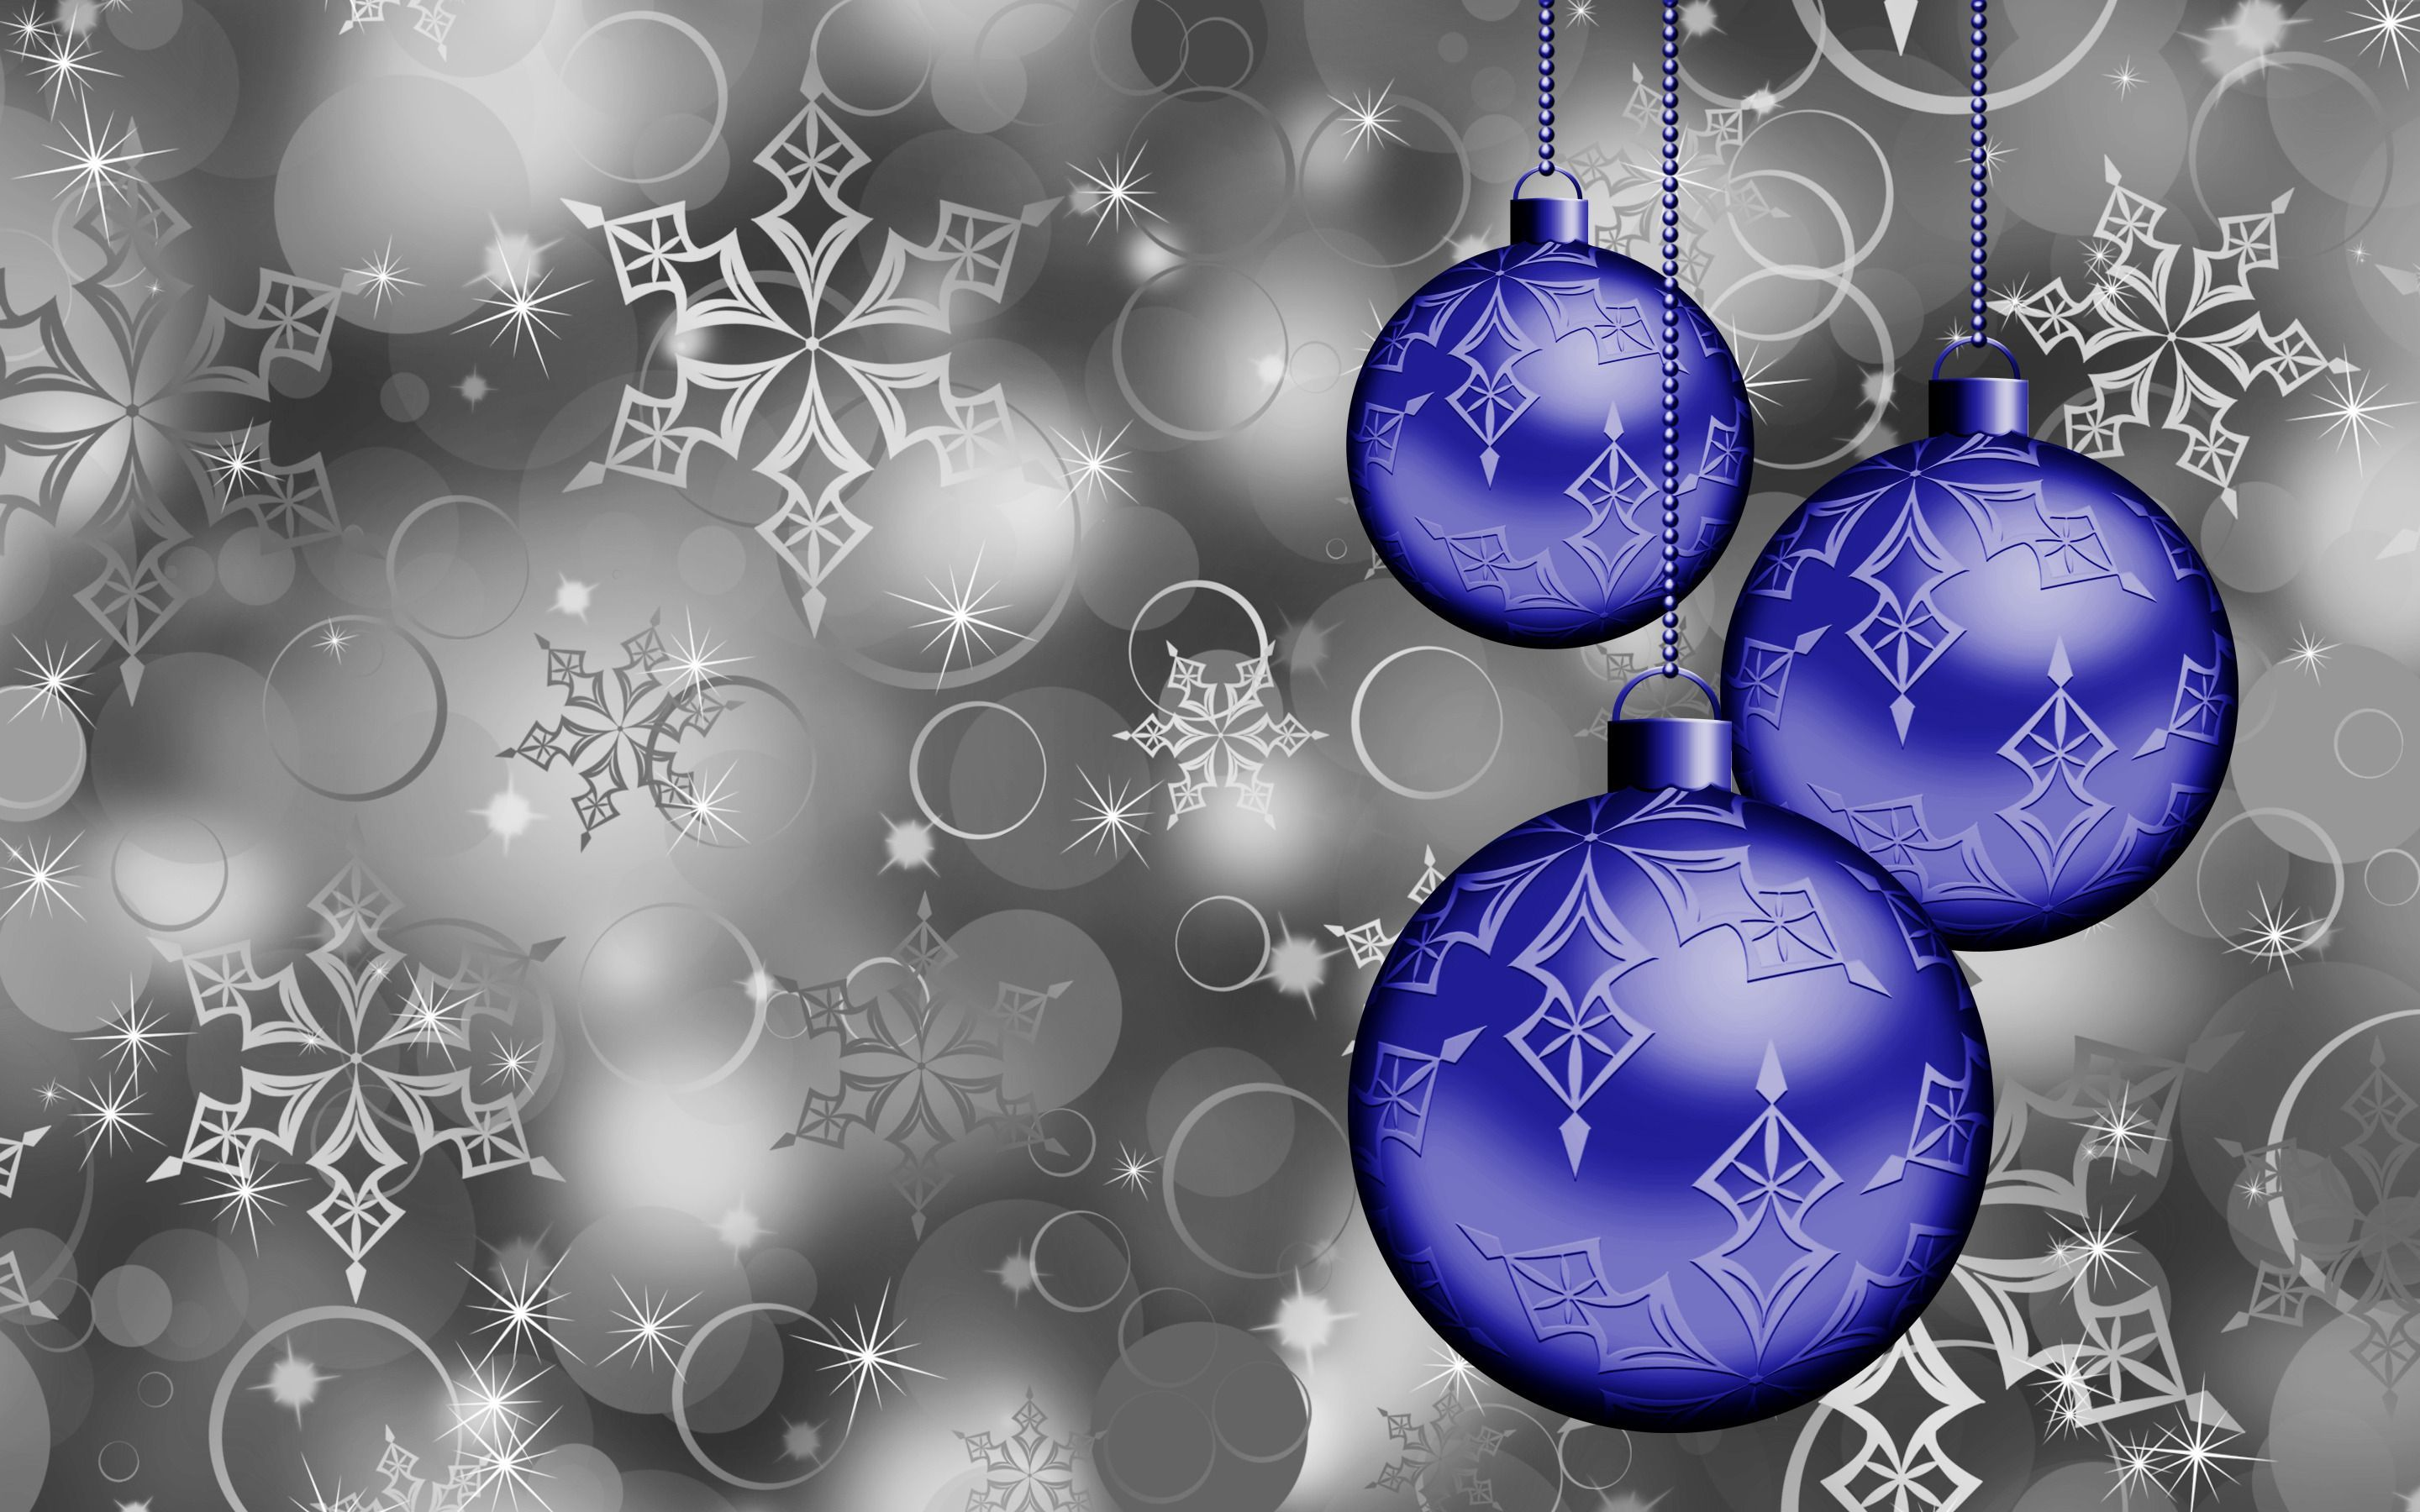 2880x1800 christmas ornaments HD Wallpaper - Ball Wallpaper Ornament Wallpaper ...